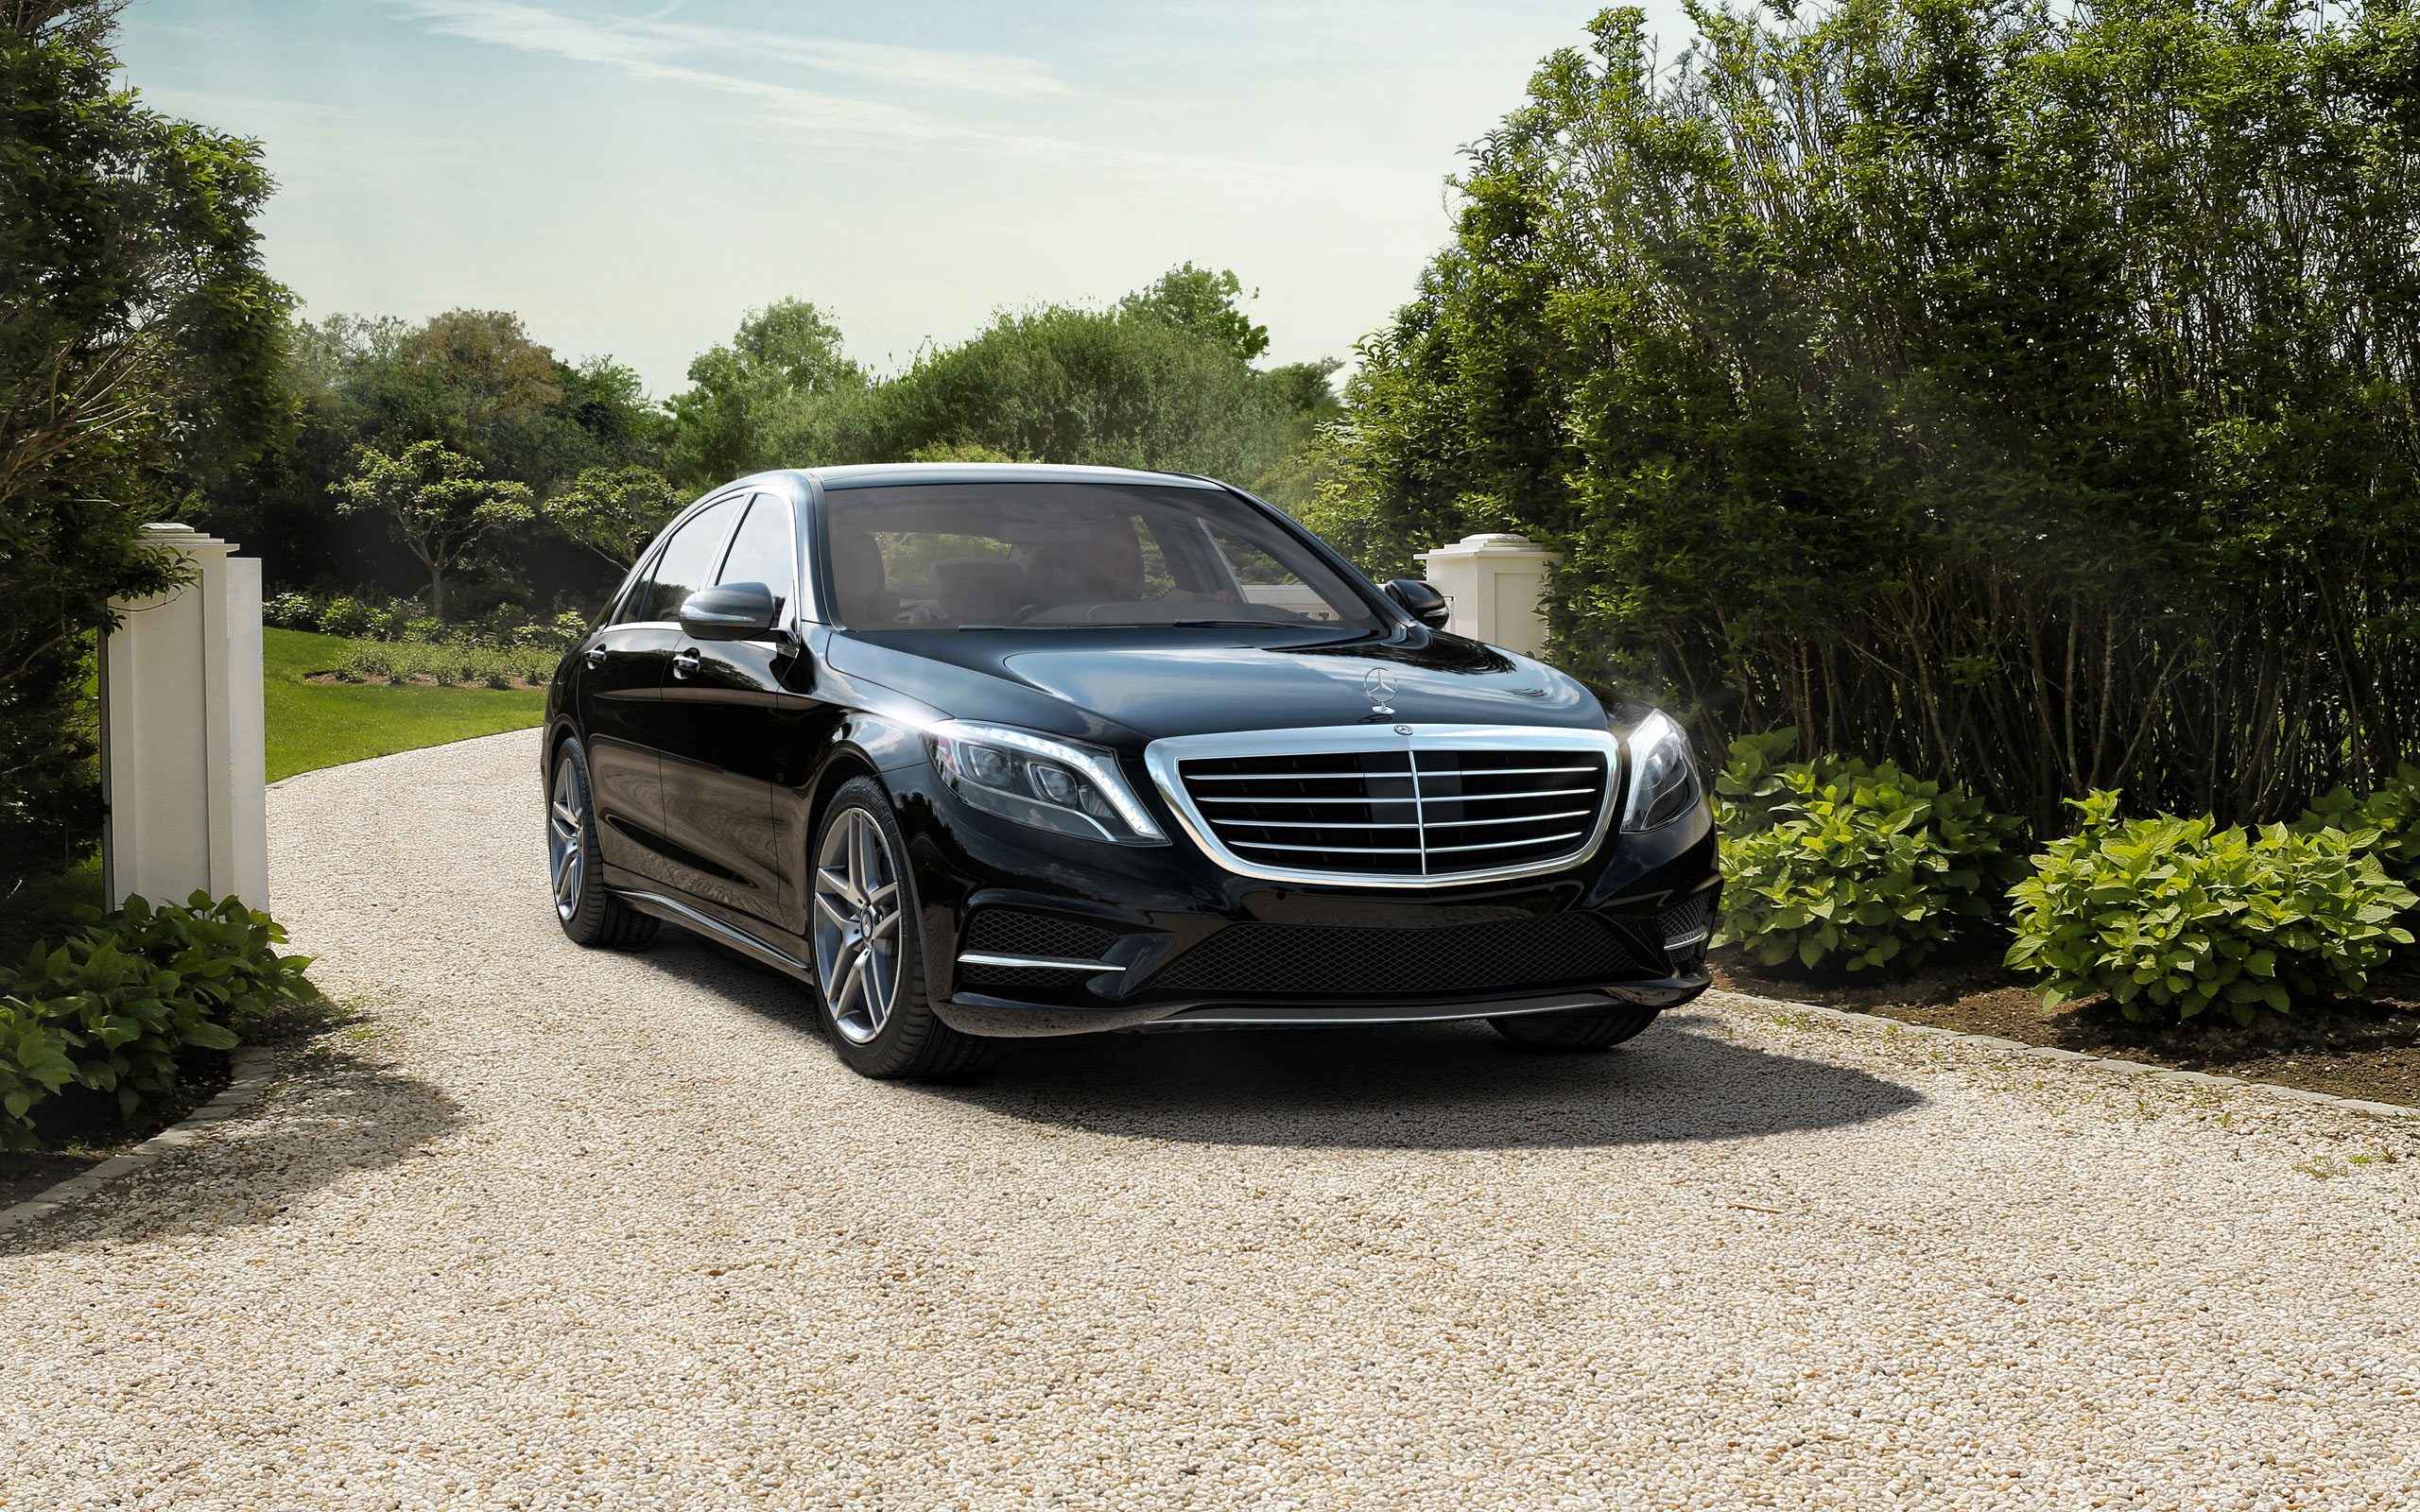 s550 in black with sport package - Mercedes Benz 2014 S Class Black